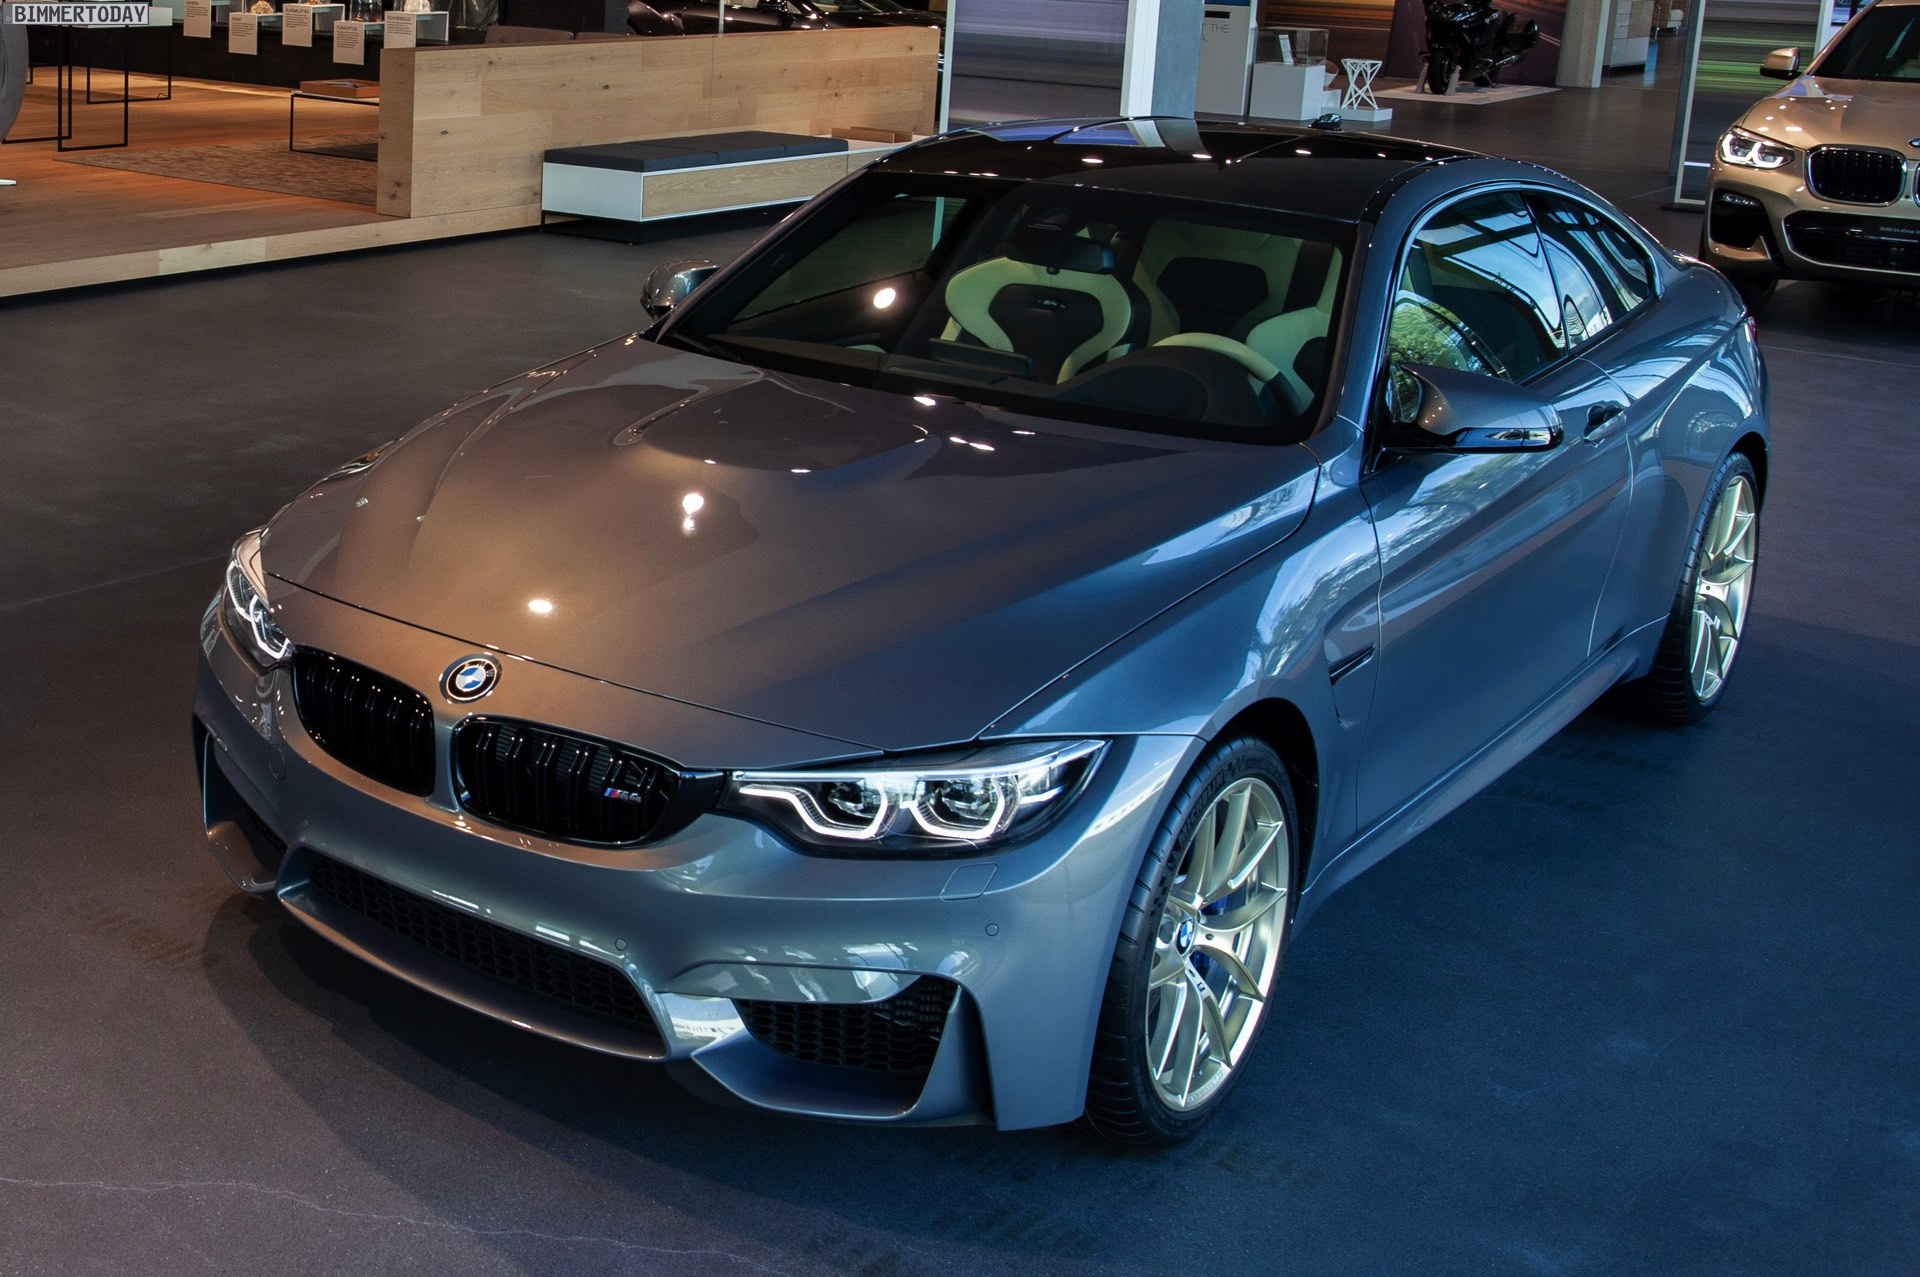 bmw individual m4 stratusgrau trifft felgen in frozen. Black Bedroom Furniture Sets. Home Design Ideas